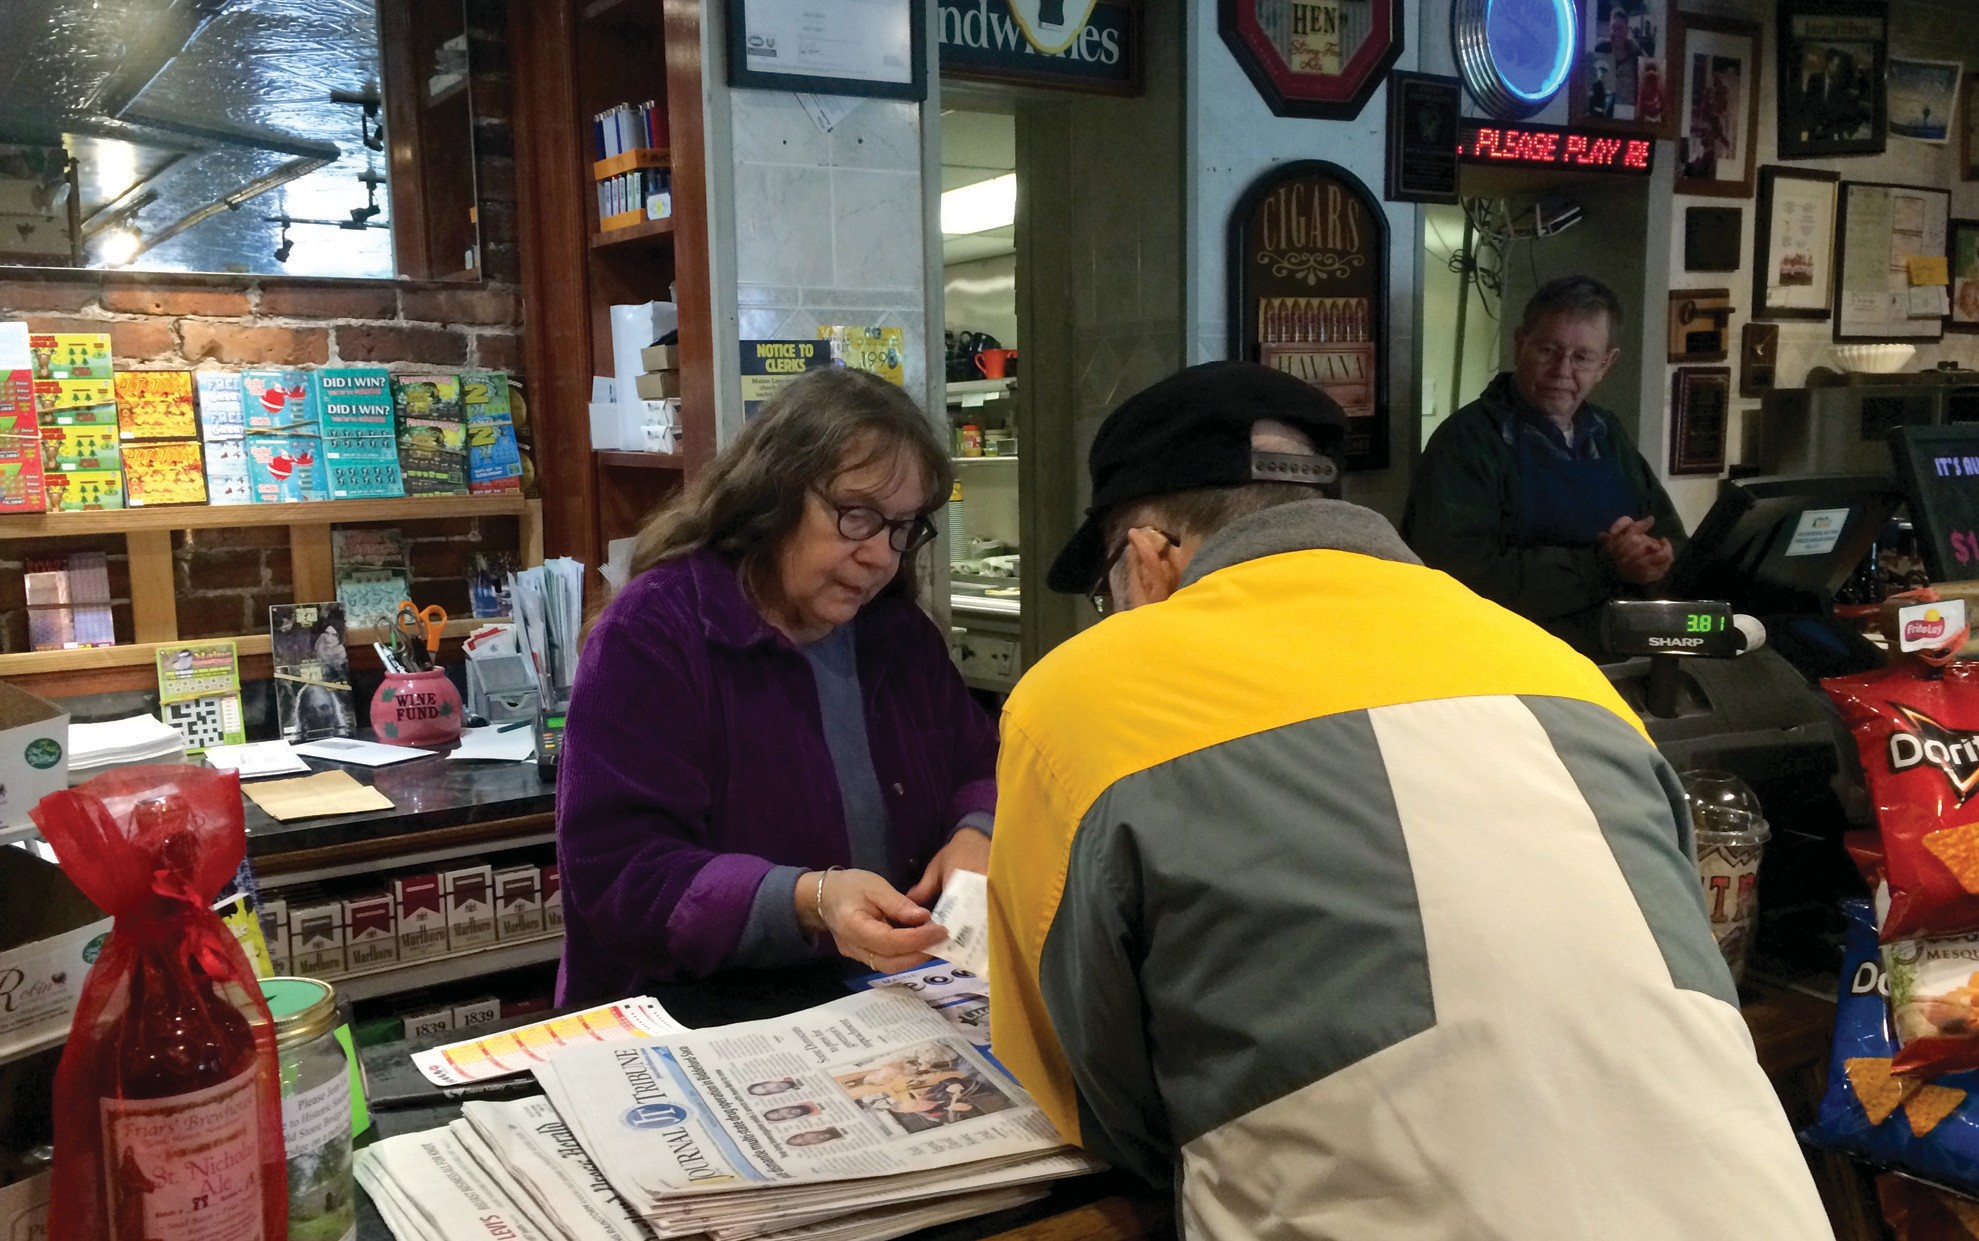 Beth Johnston, co-owner of Vic and Whit's sandwich shop in Saco, sells a man a Powerball ticket Monday afternoon. With the Powerball jackpot higher than ever, local stores are reporting a swell in ticket sales.